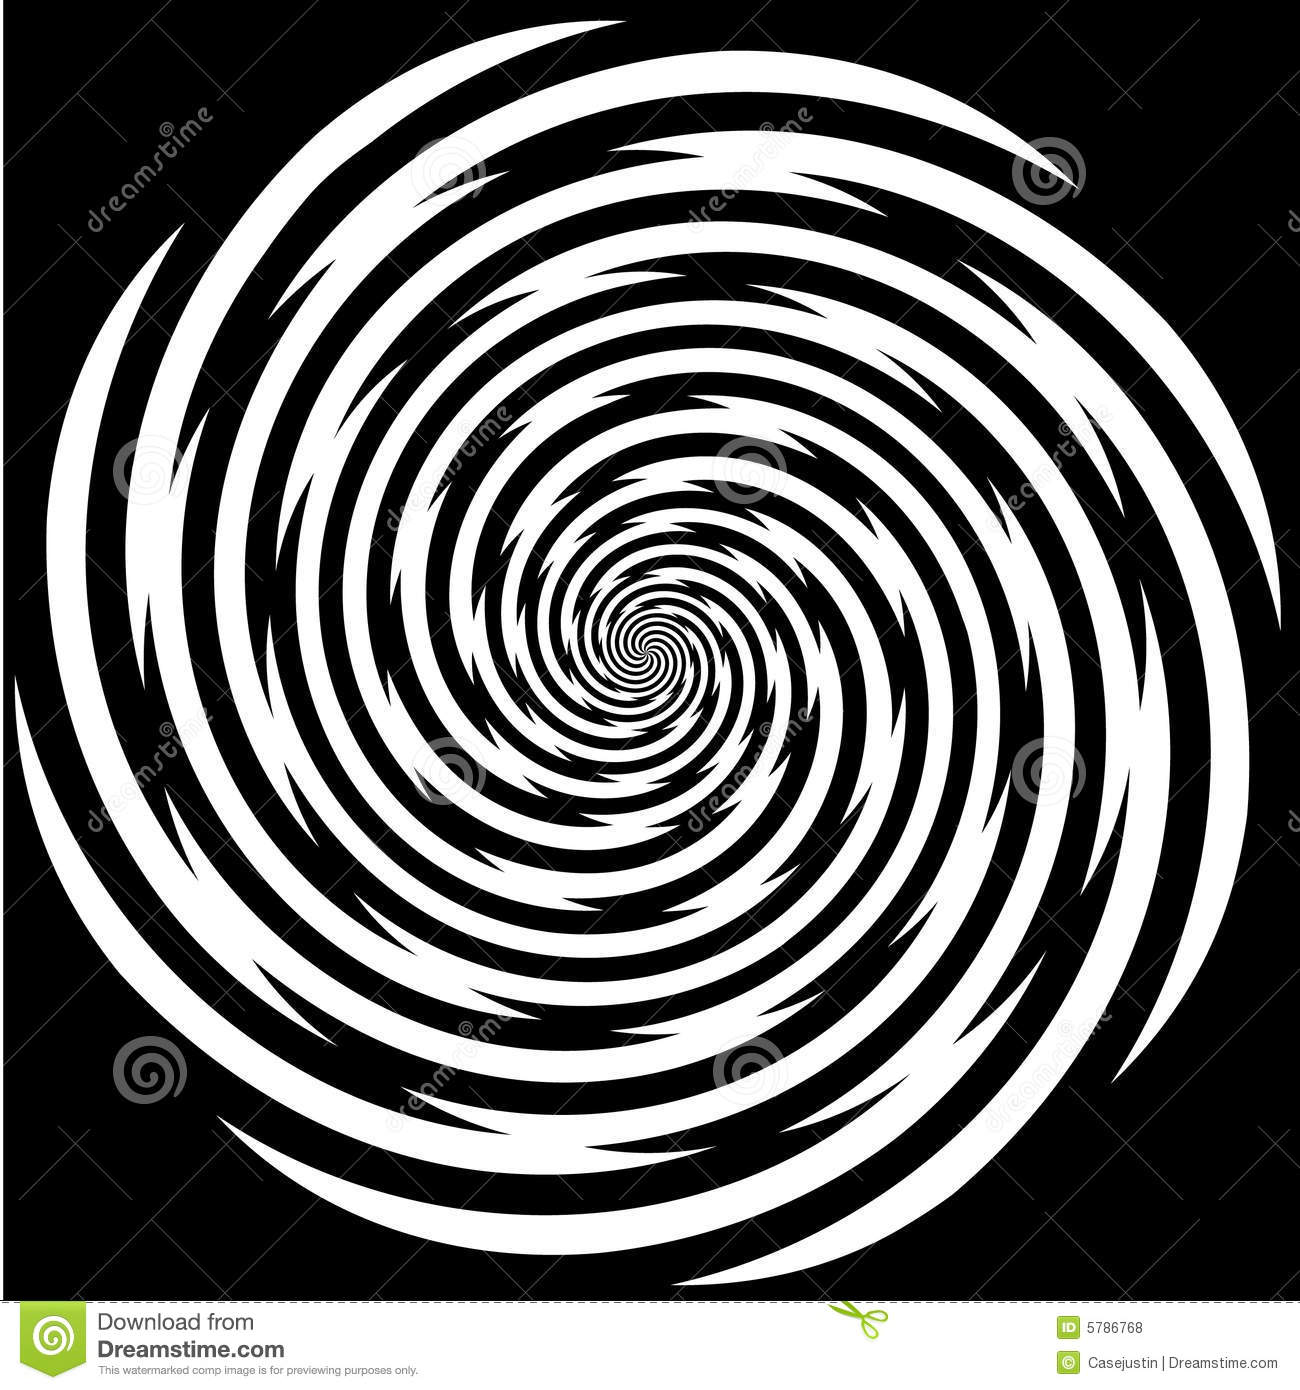 Hypnosis Spiral, Stress, Strain, Optical Illusion